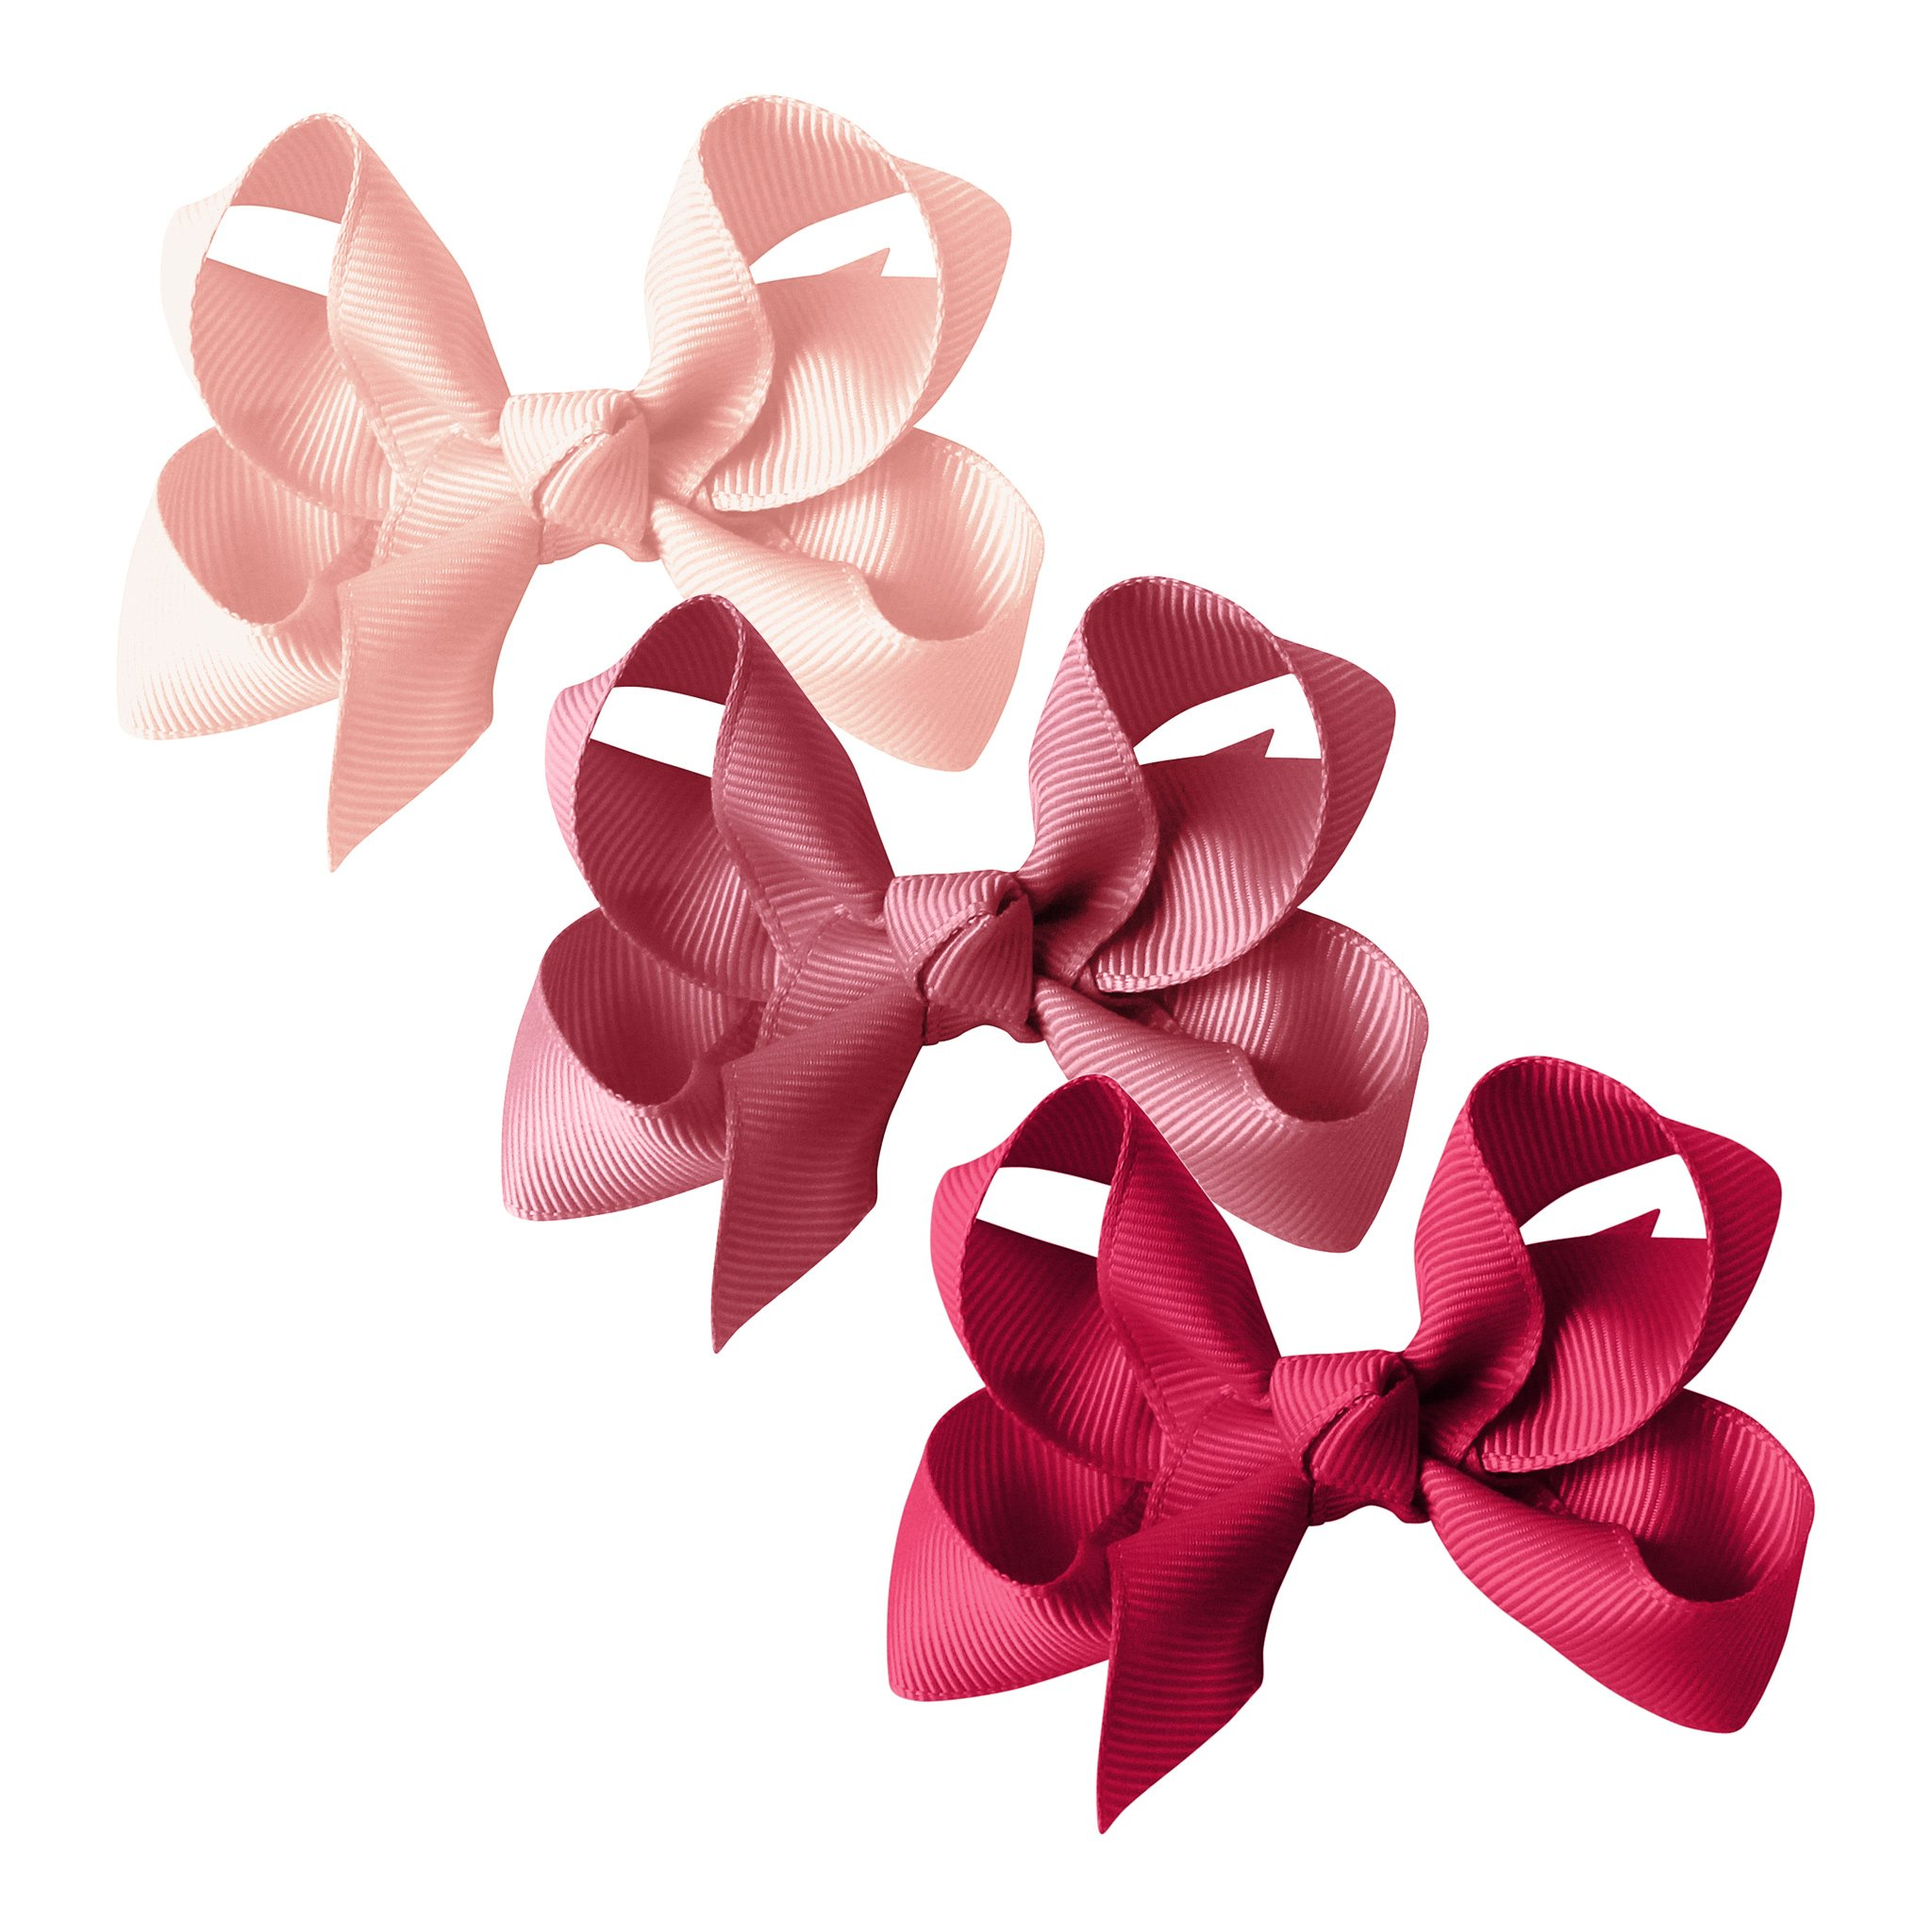 Image of Milledeux® gift set - Grosgrain Collection - 3 Medium boutique bows - pinks